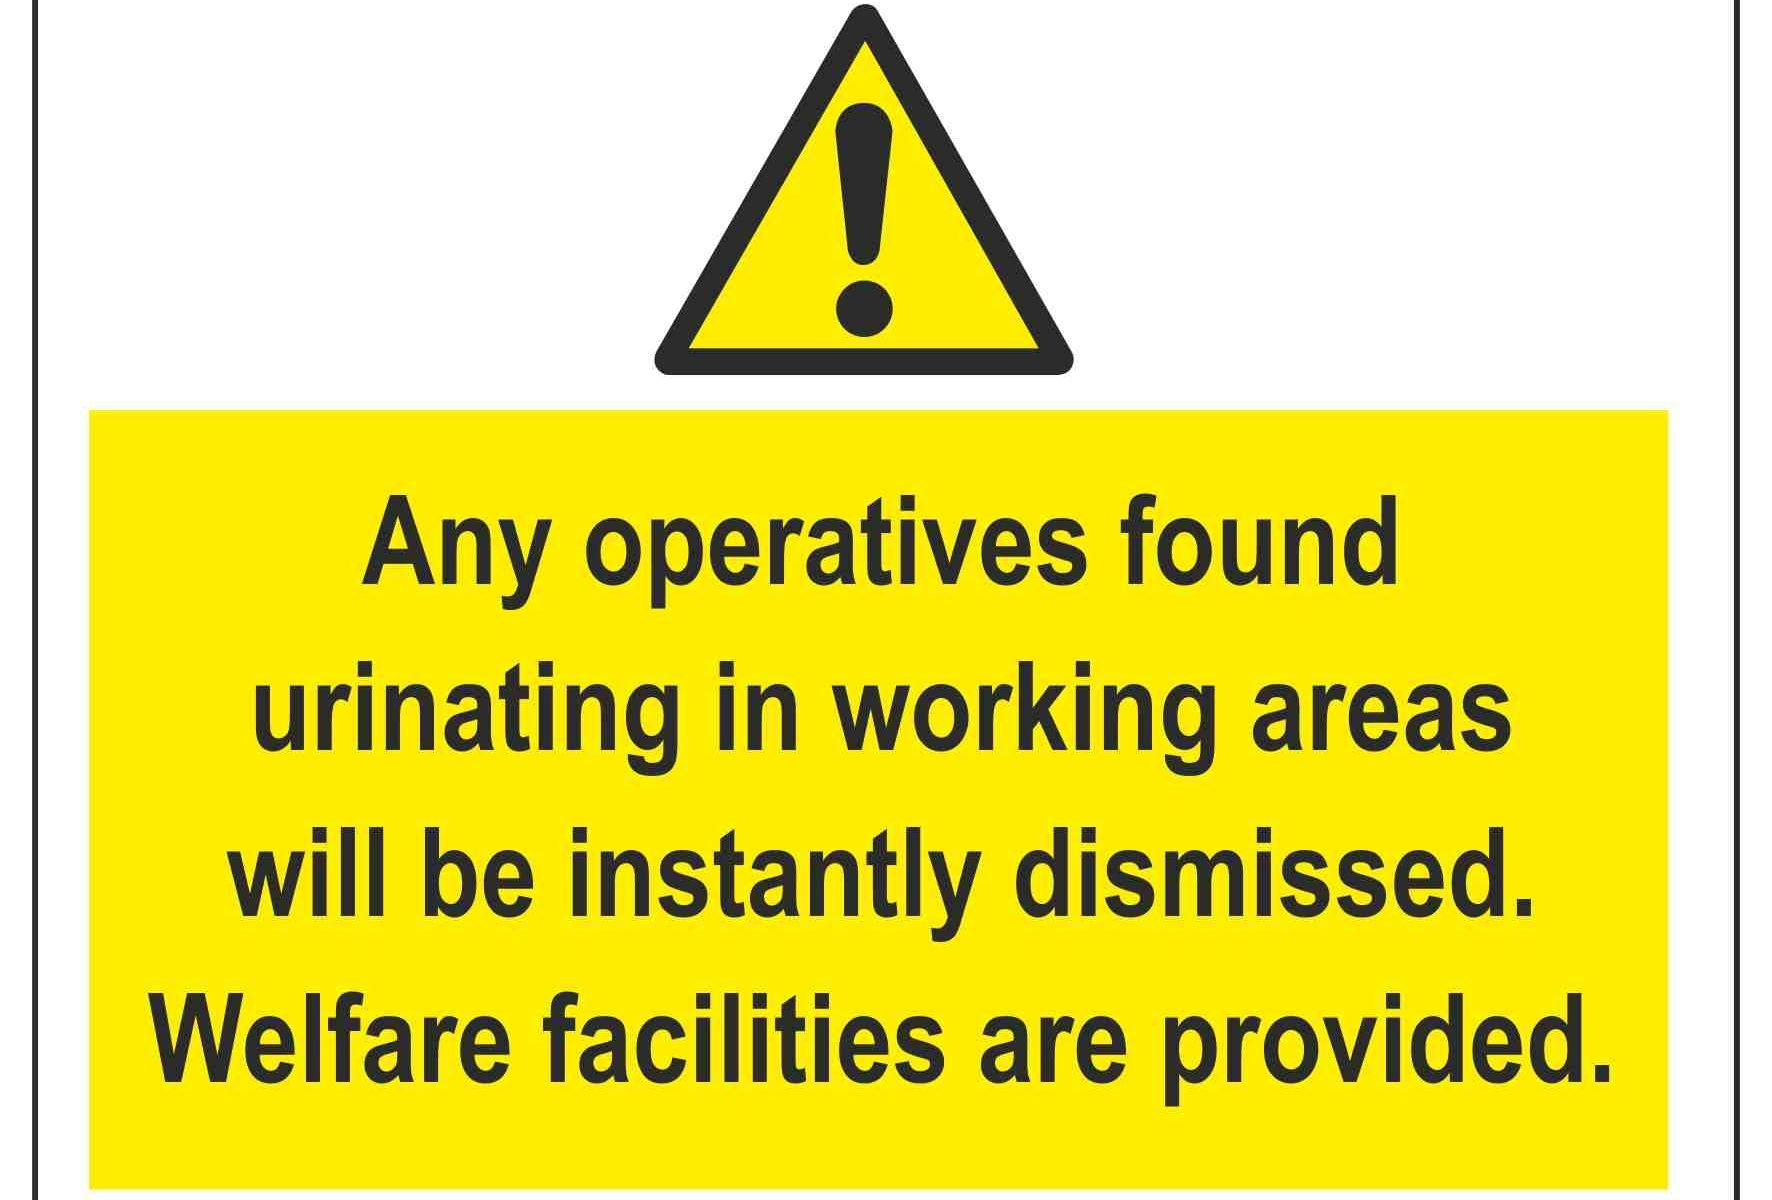 Any operatives found urinating in working areas will be instantly dismissed. Welfare facilities are provided.